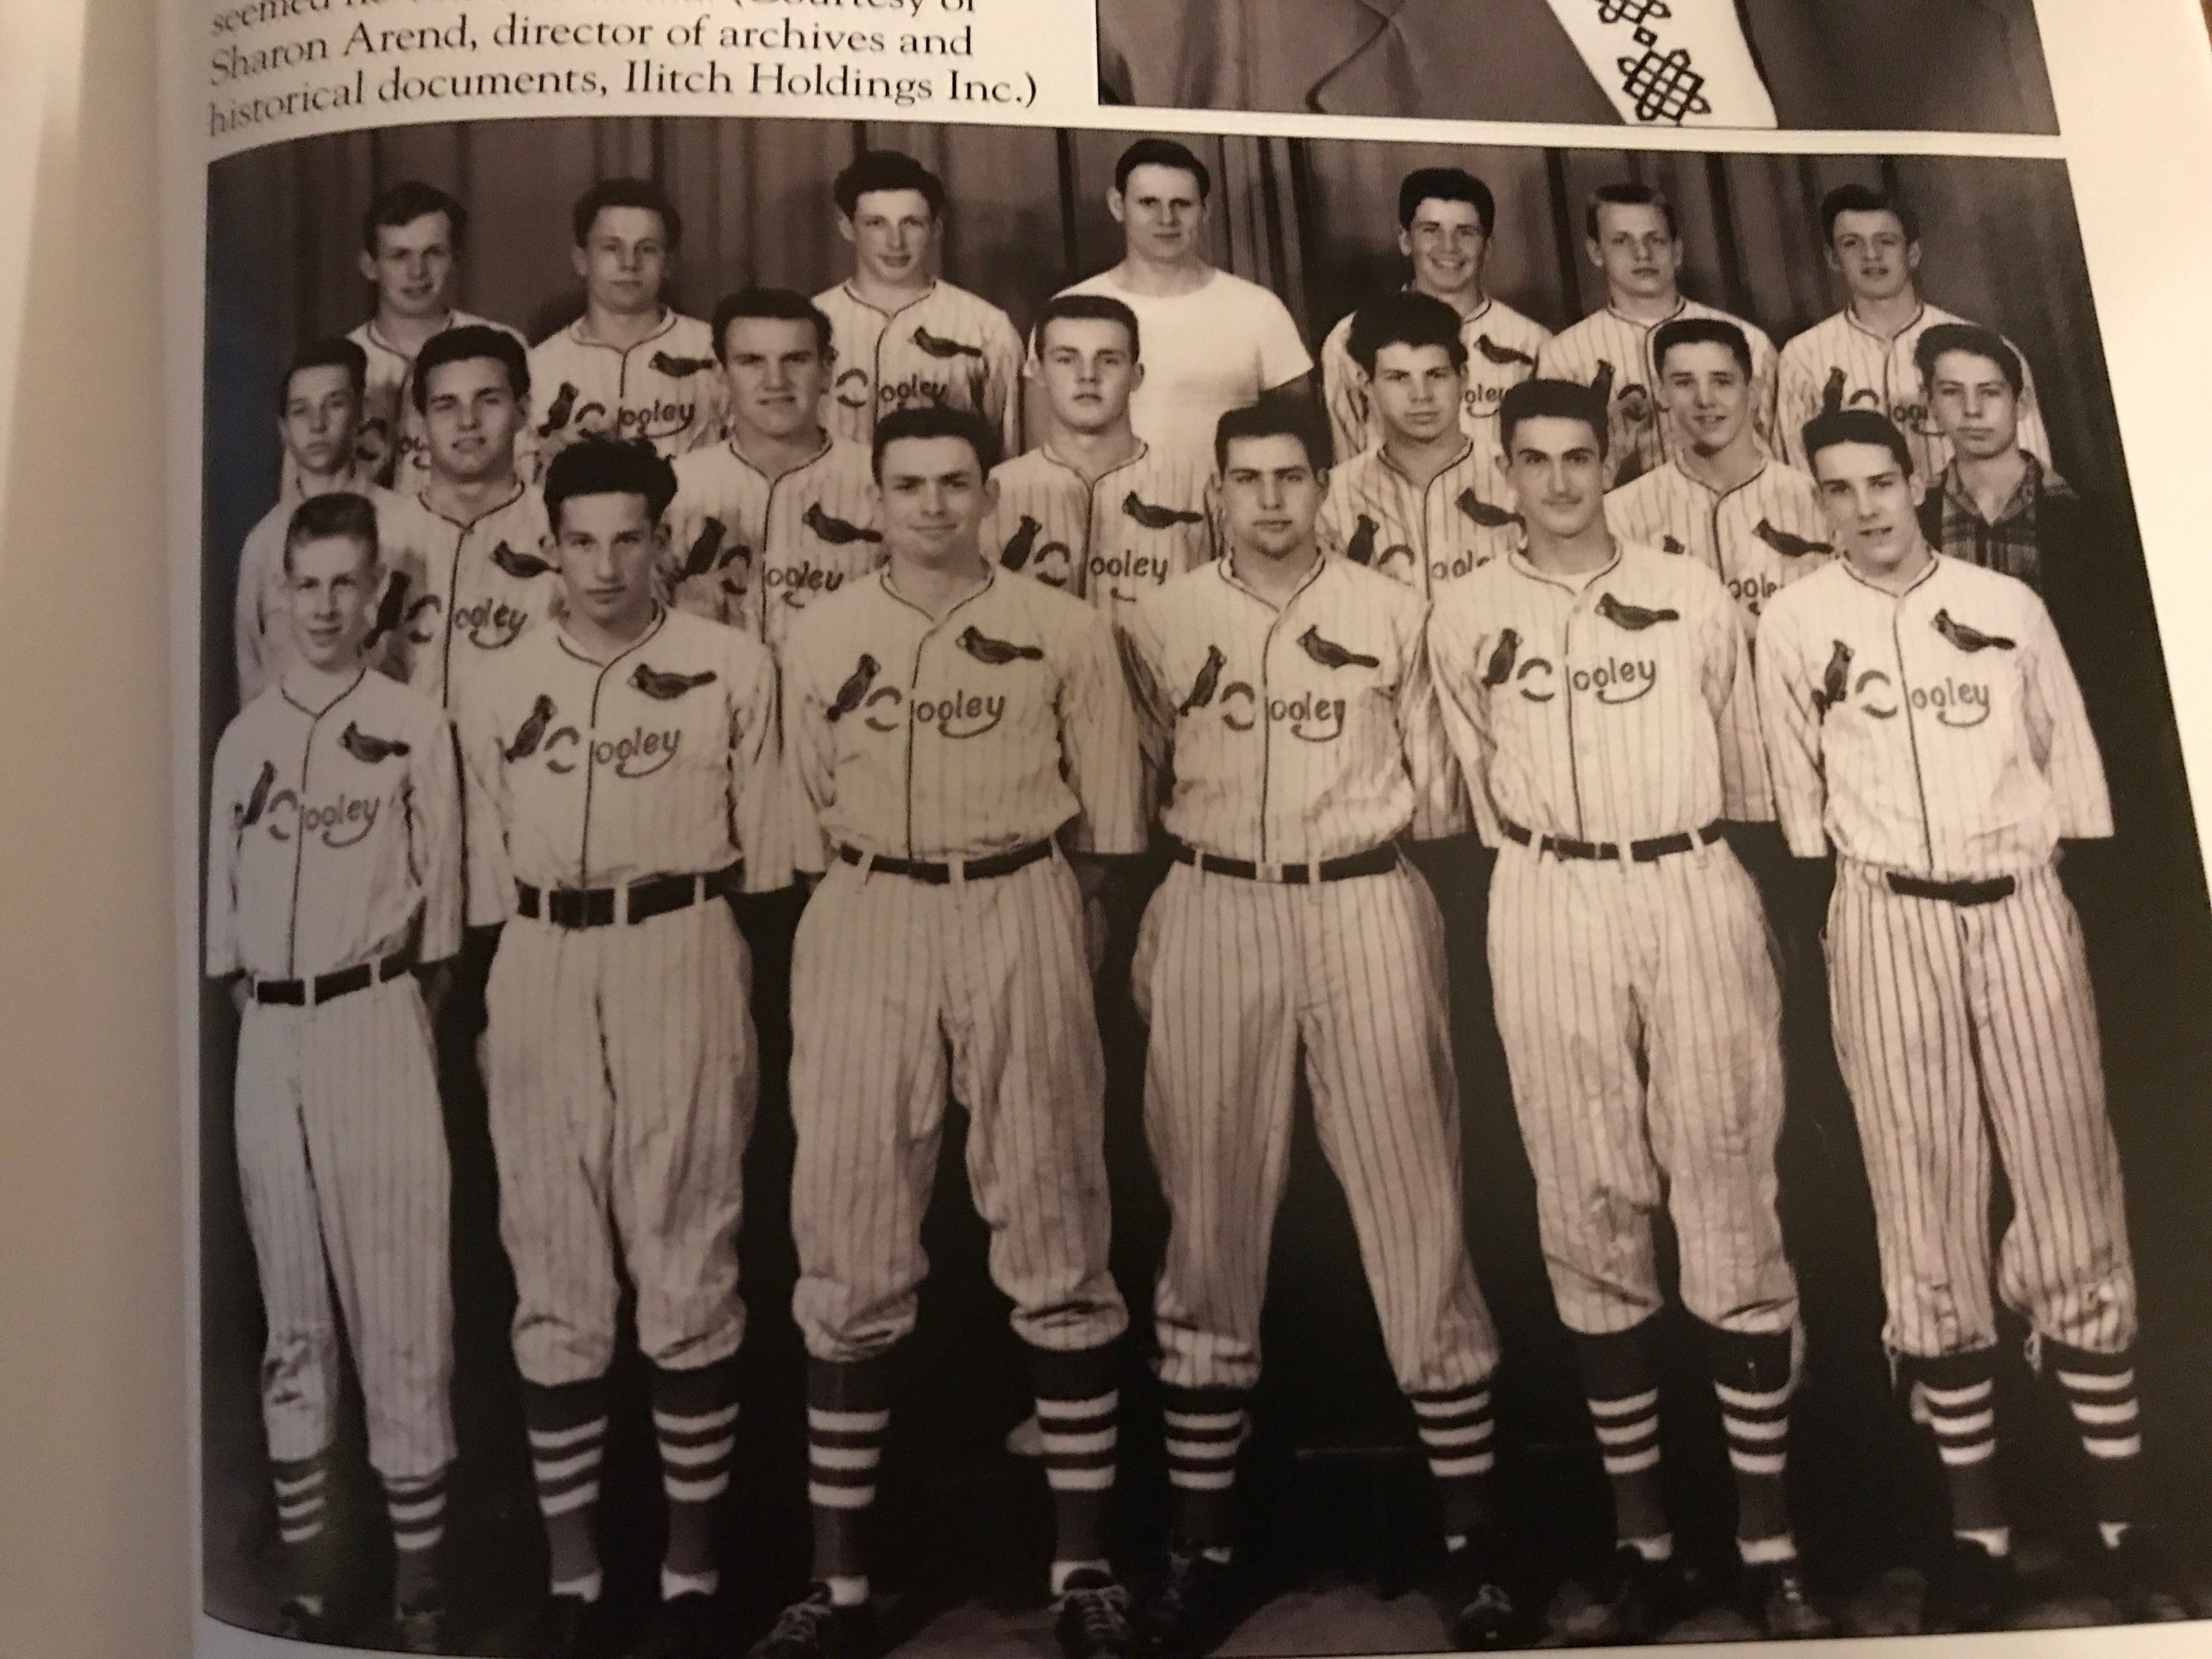 A peek inside Joseph McCauley's new book shows this team photo of the Cooley Cardinals baseball team. In the front row (second from left) is Mike Ilitch.